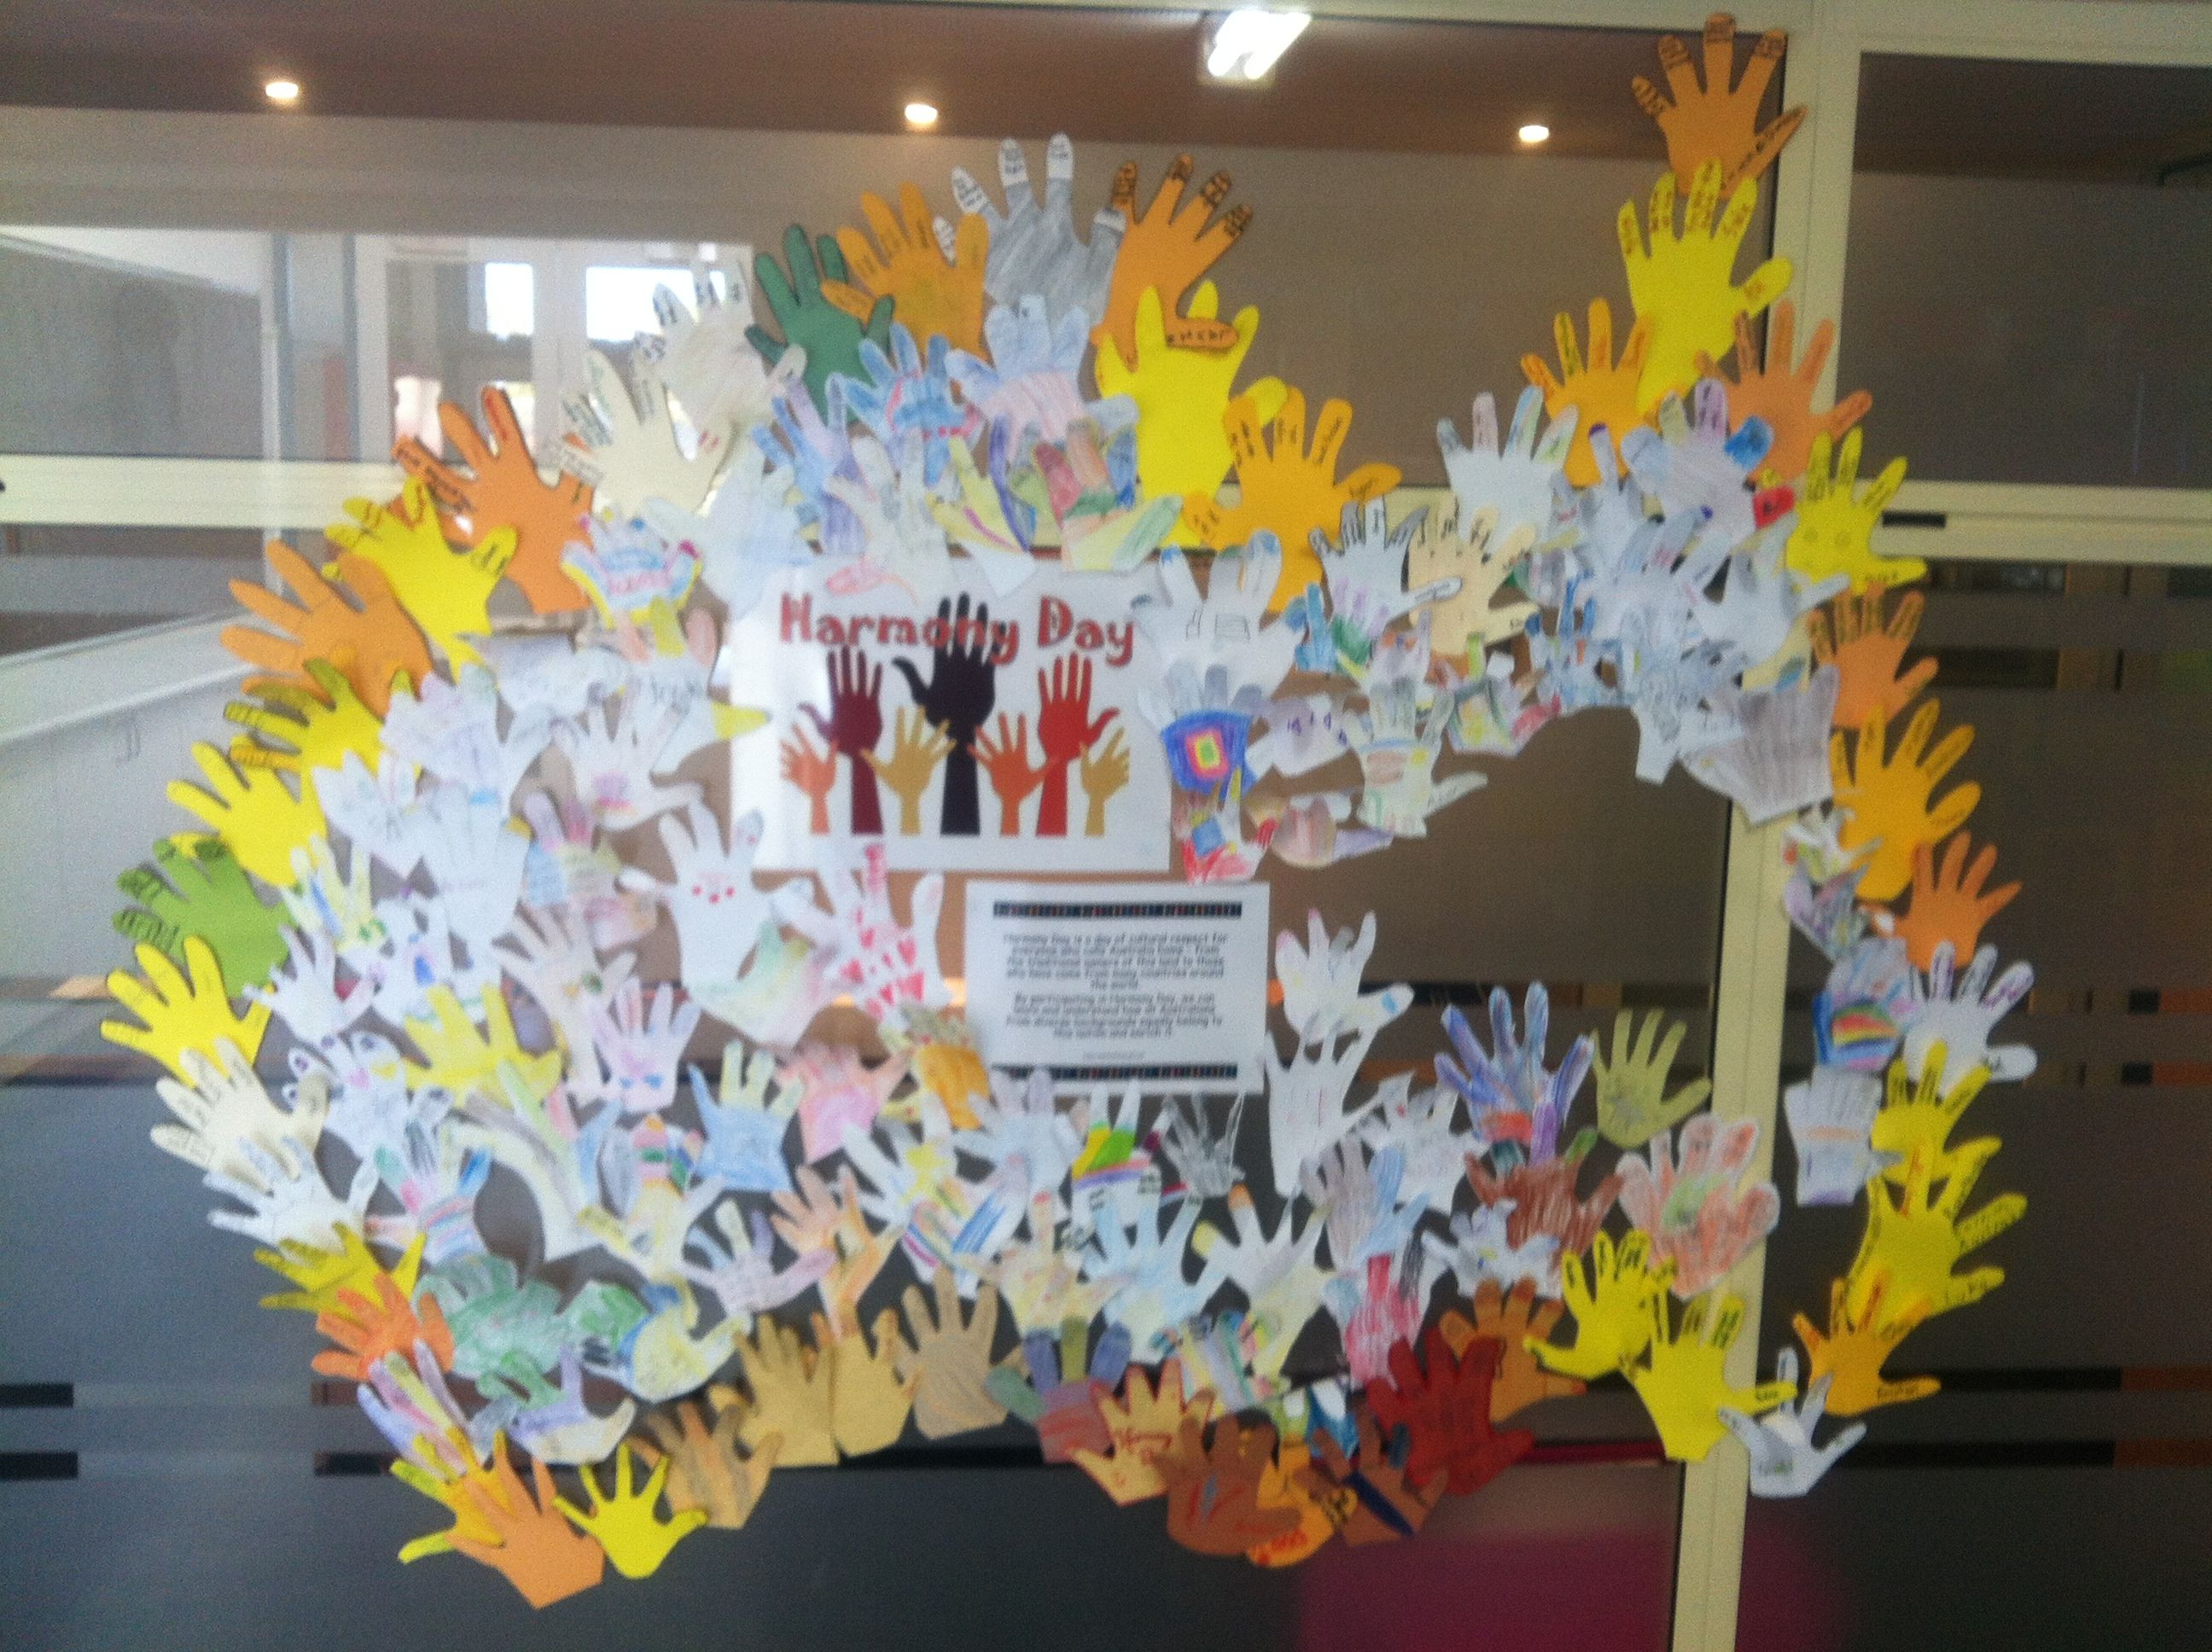 Celebrating Harmony Day In Australia With Cut Out Of The